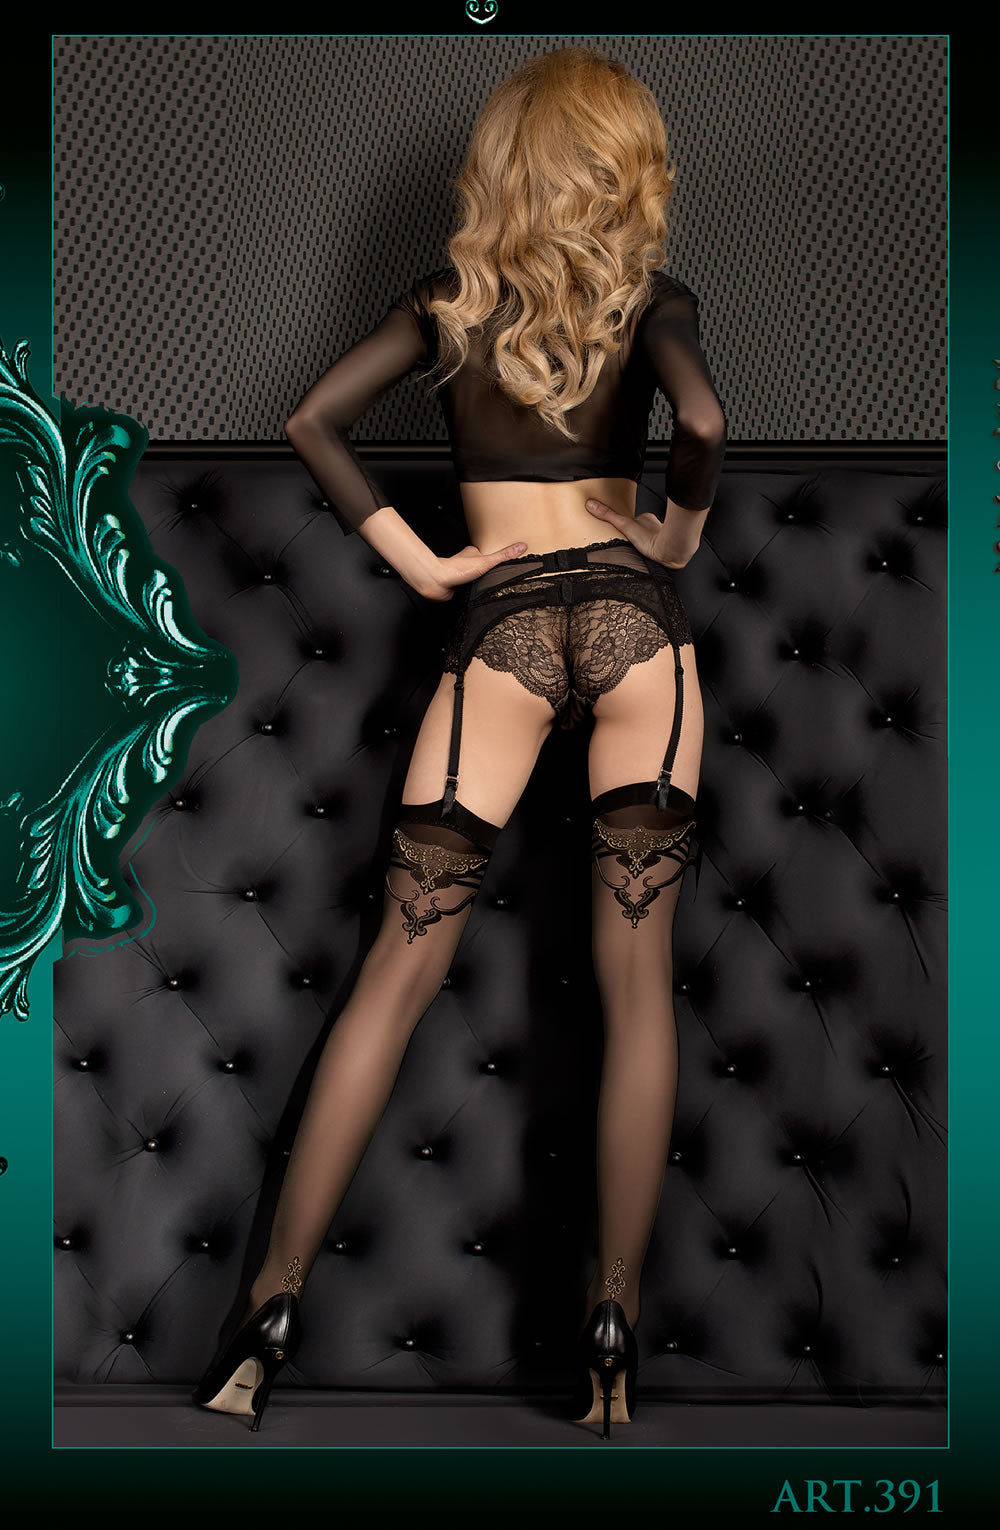 Thigh high stockings with gold stiching